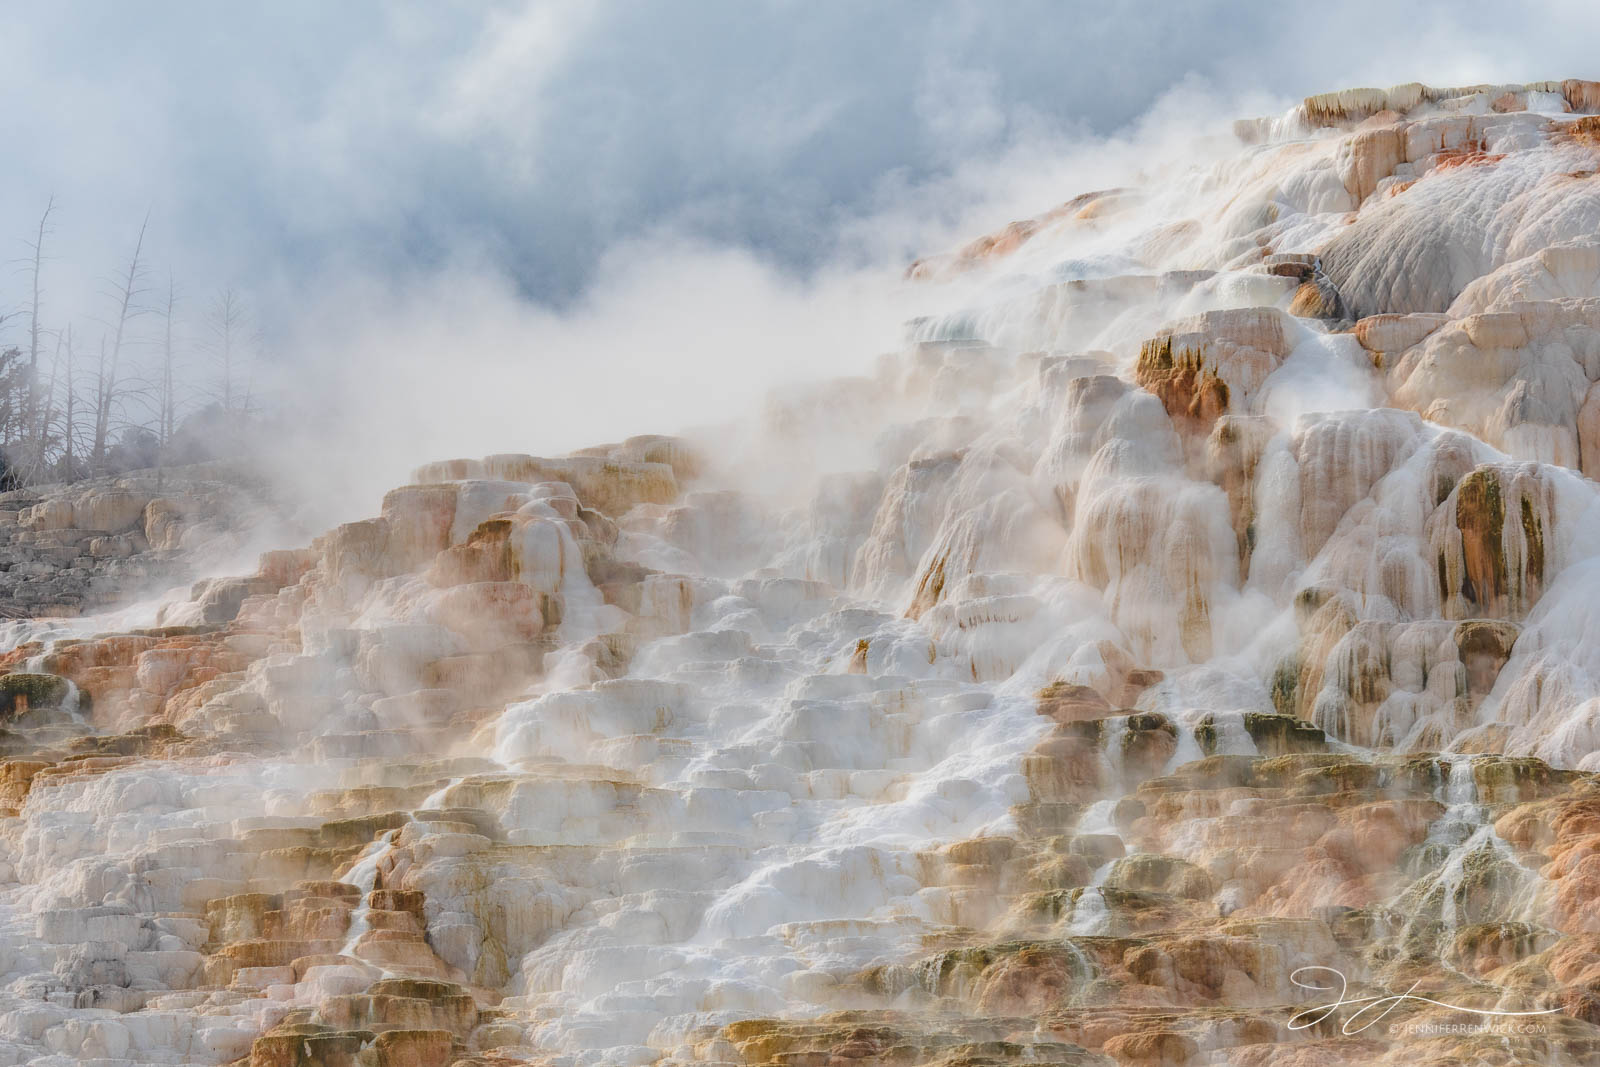 Terraces at Canary Spring steam and glow in the morning light at Mammoth Hot Springs.